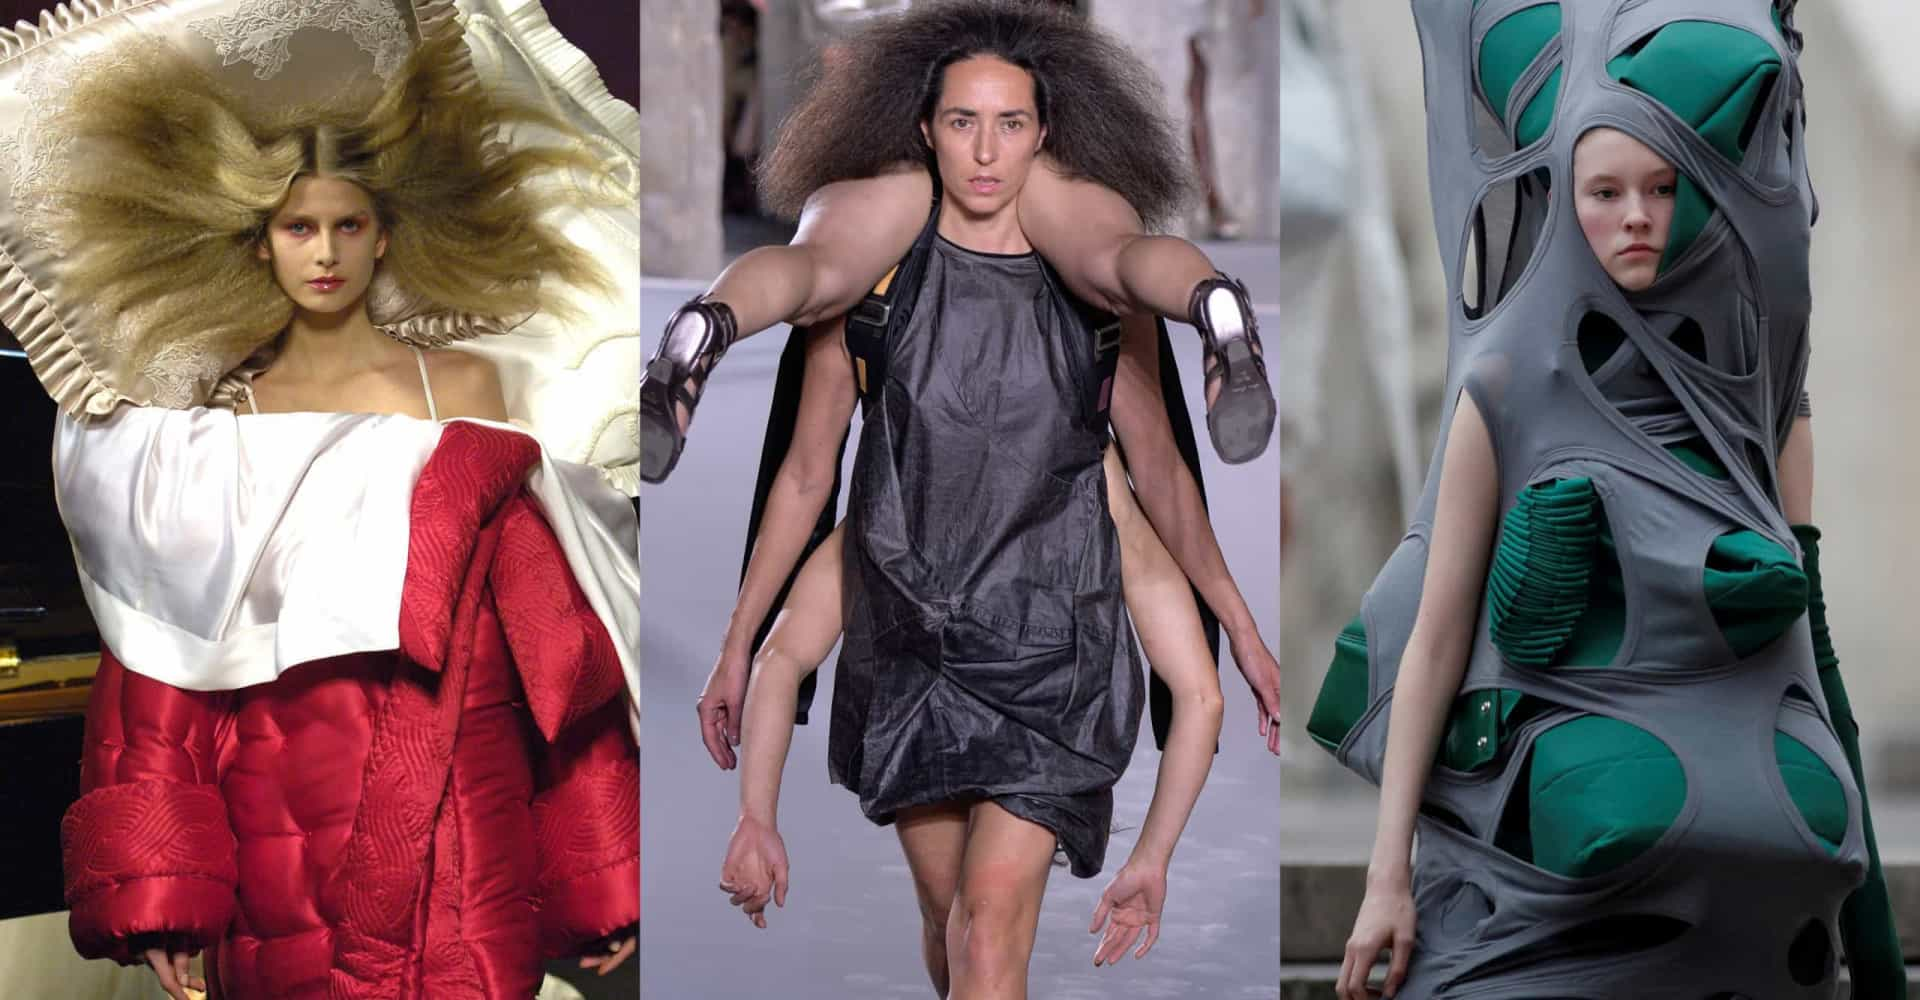 Strangest fashion to ever hit the runways